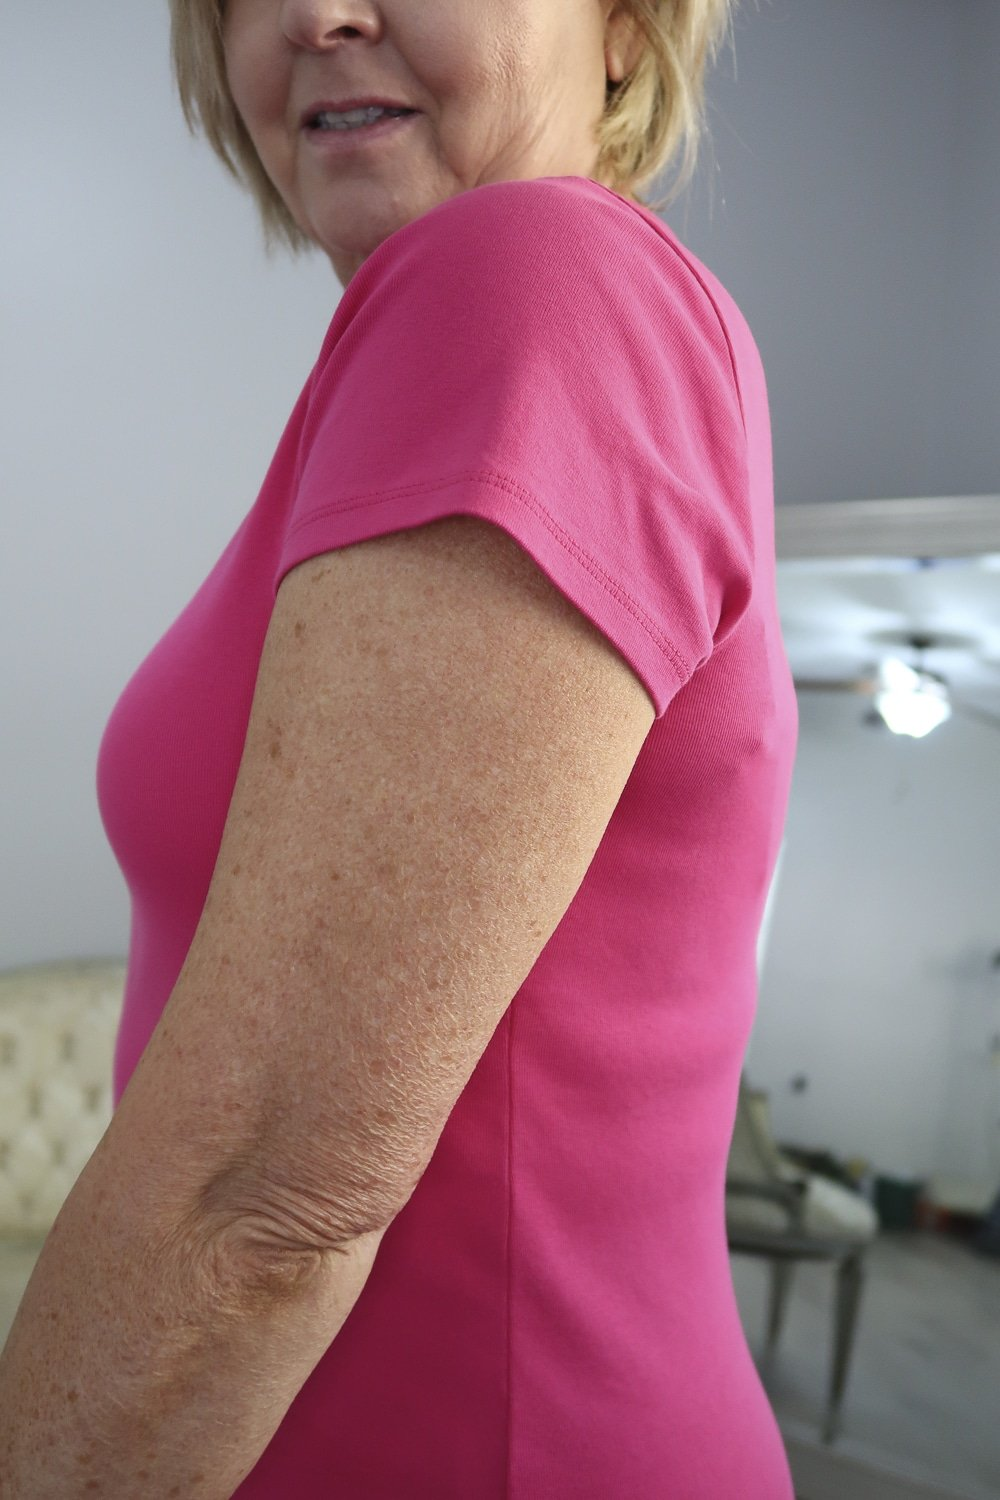 Fashion Blogger 50 Is Not Old wearing a pink t-shirt with a side view to help you choose the best bra